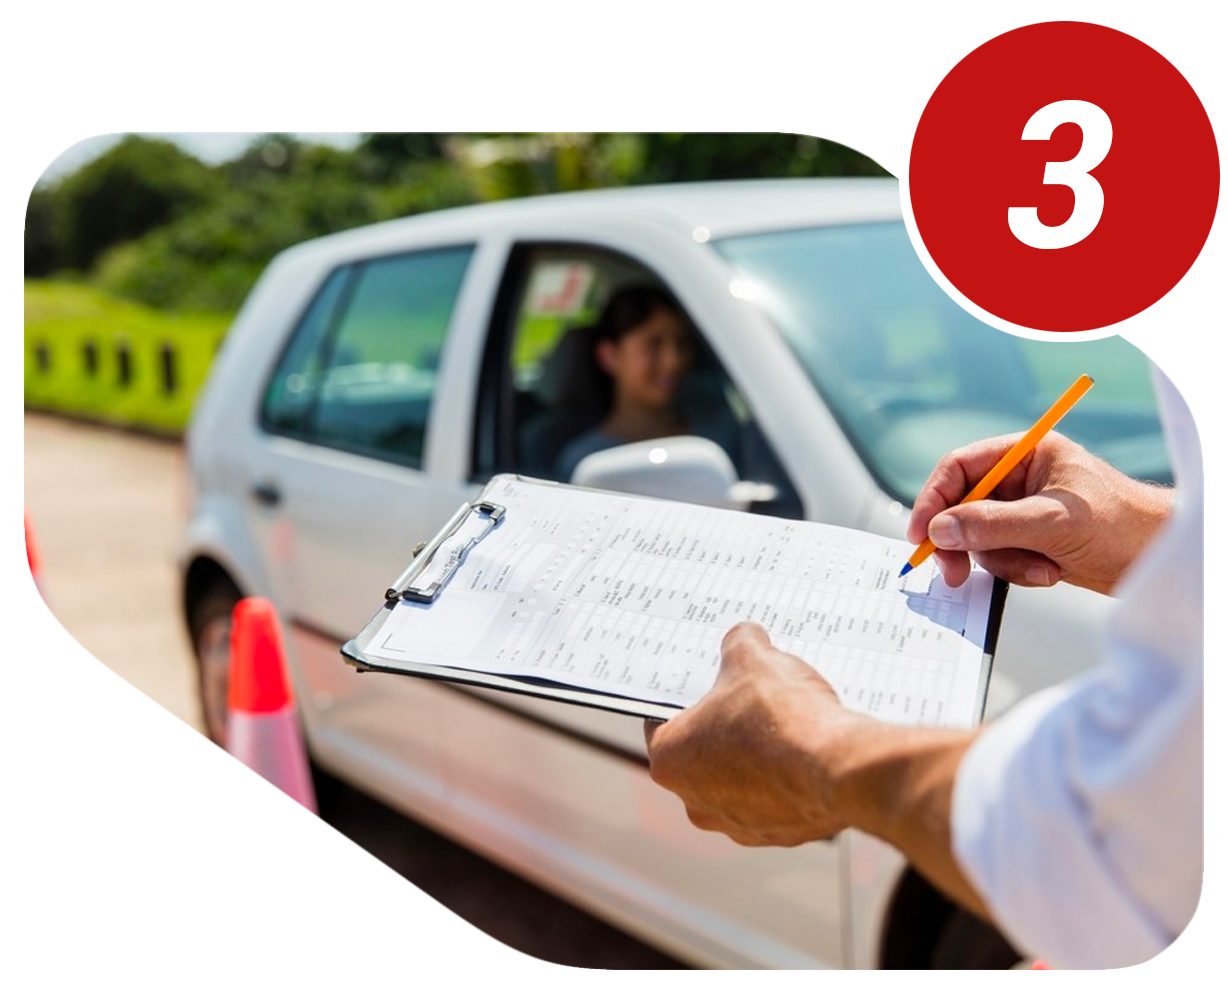 TEXAS DRIVING SCHOOL is a family owned business serving the driver education needs of south Corpus Christi, Texas and surrounding areas for over 15 years. We are licensed (C) by the Texas Education Agency's Driver Training Division and bonded as required by state law.